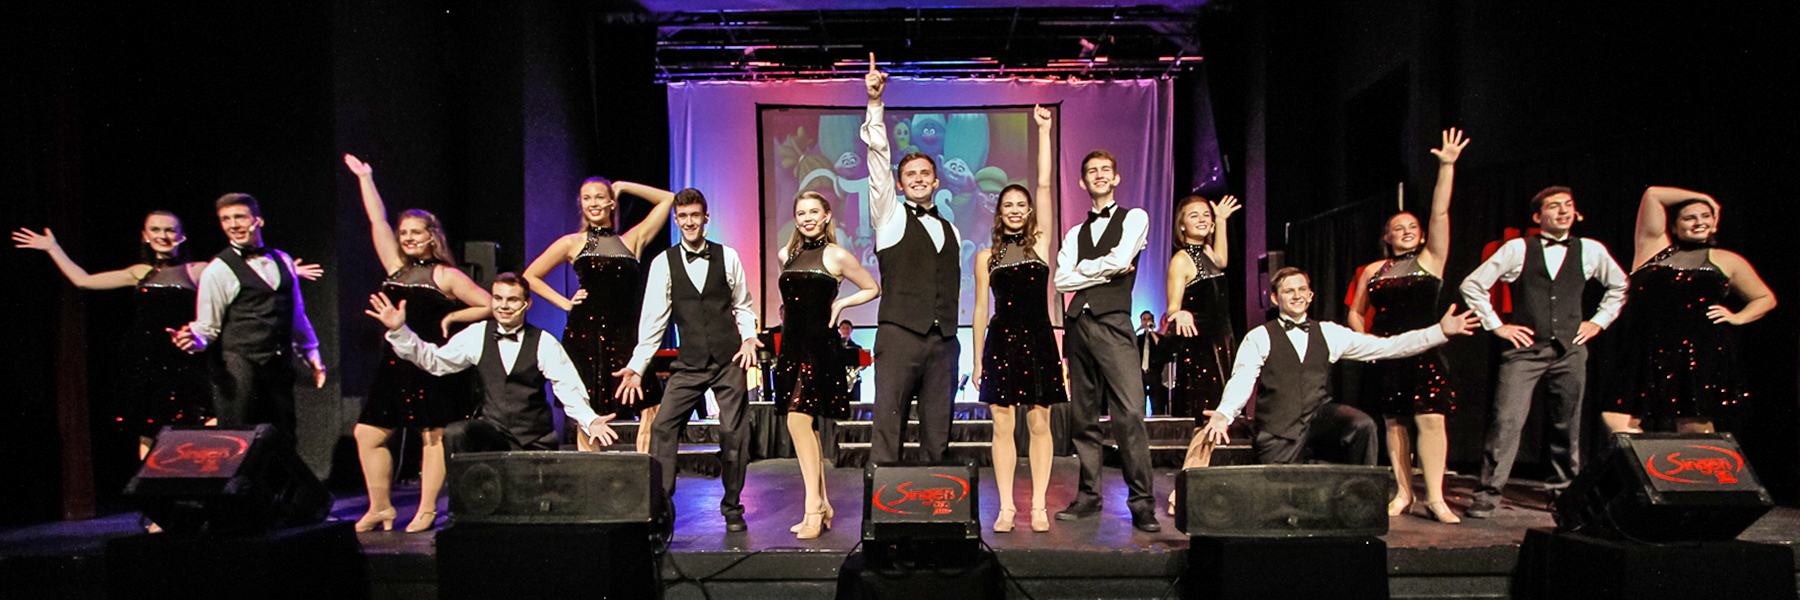 Wisconsin Singers provides Broadway-caliber entertainment